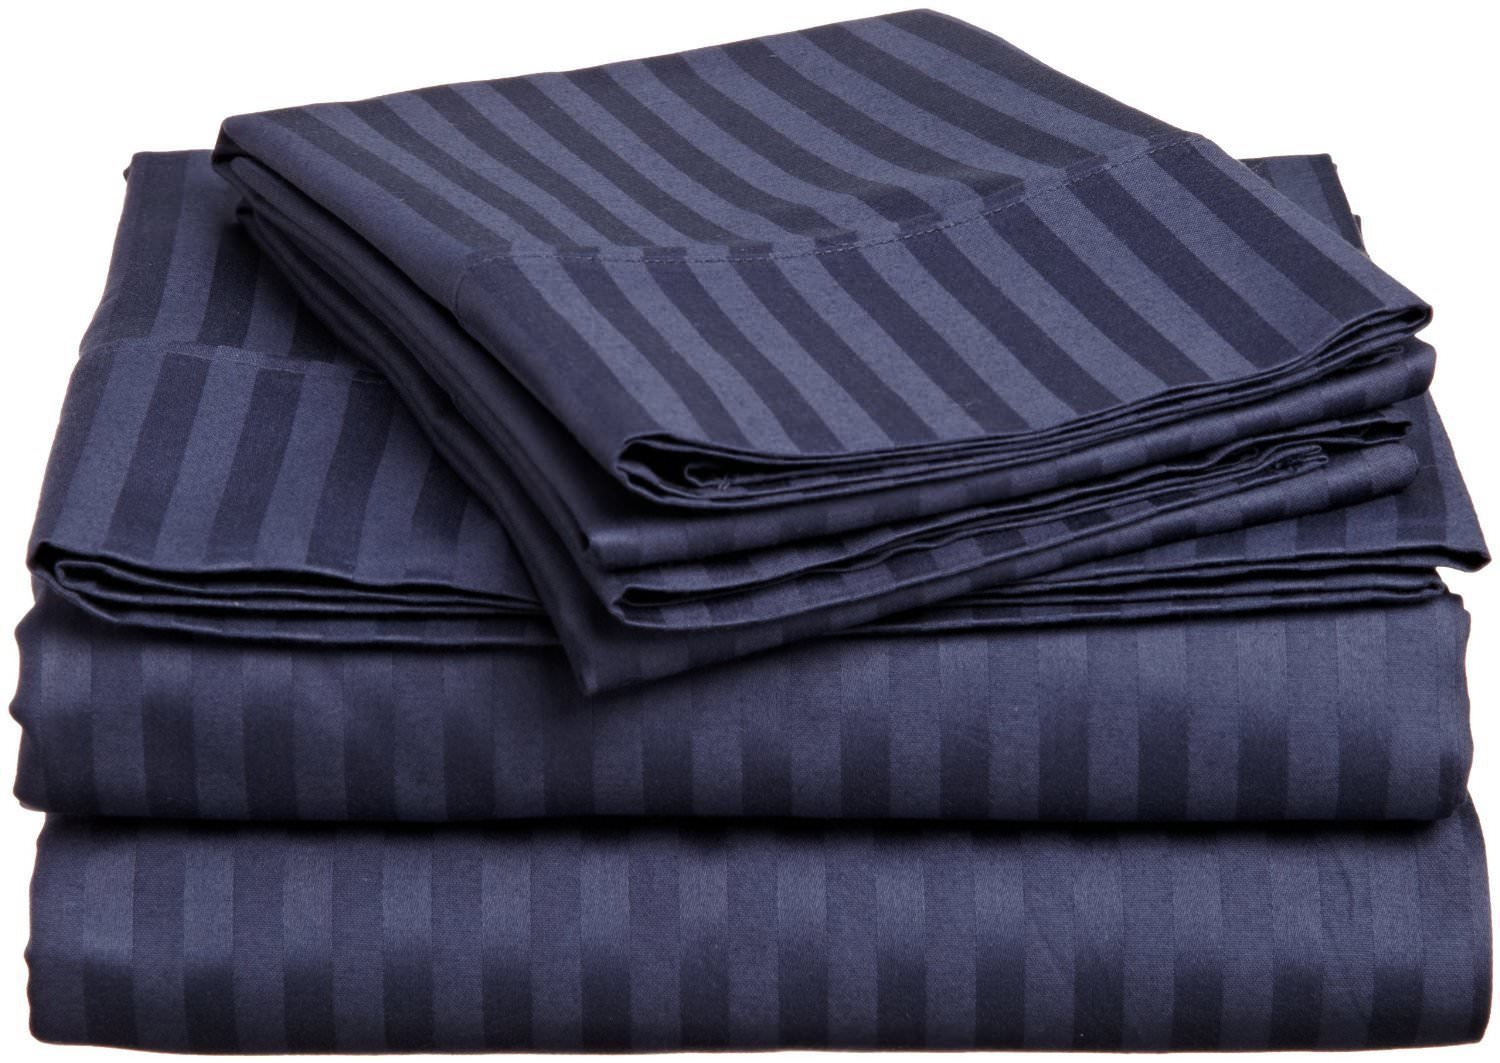 Home Decore Linen Luxurious Hotel Quality 650 Thread Count Egyptian Cotton King 4 Piece Sheet Set fits up to 18 Inch mattresses ( Deep Pocket ), Striped Navy Blue